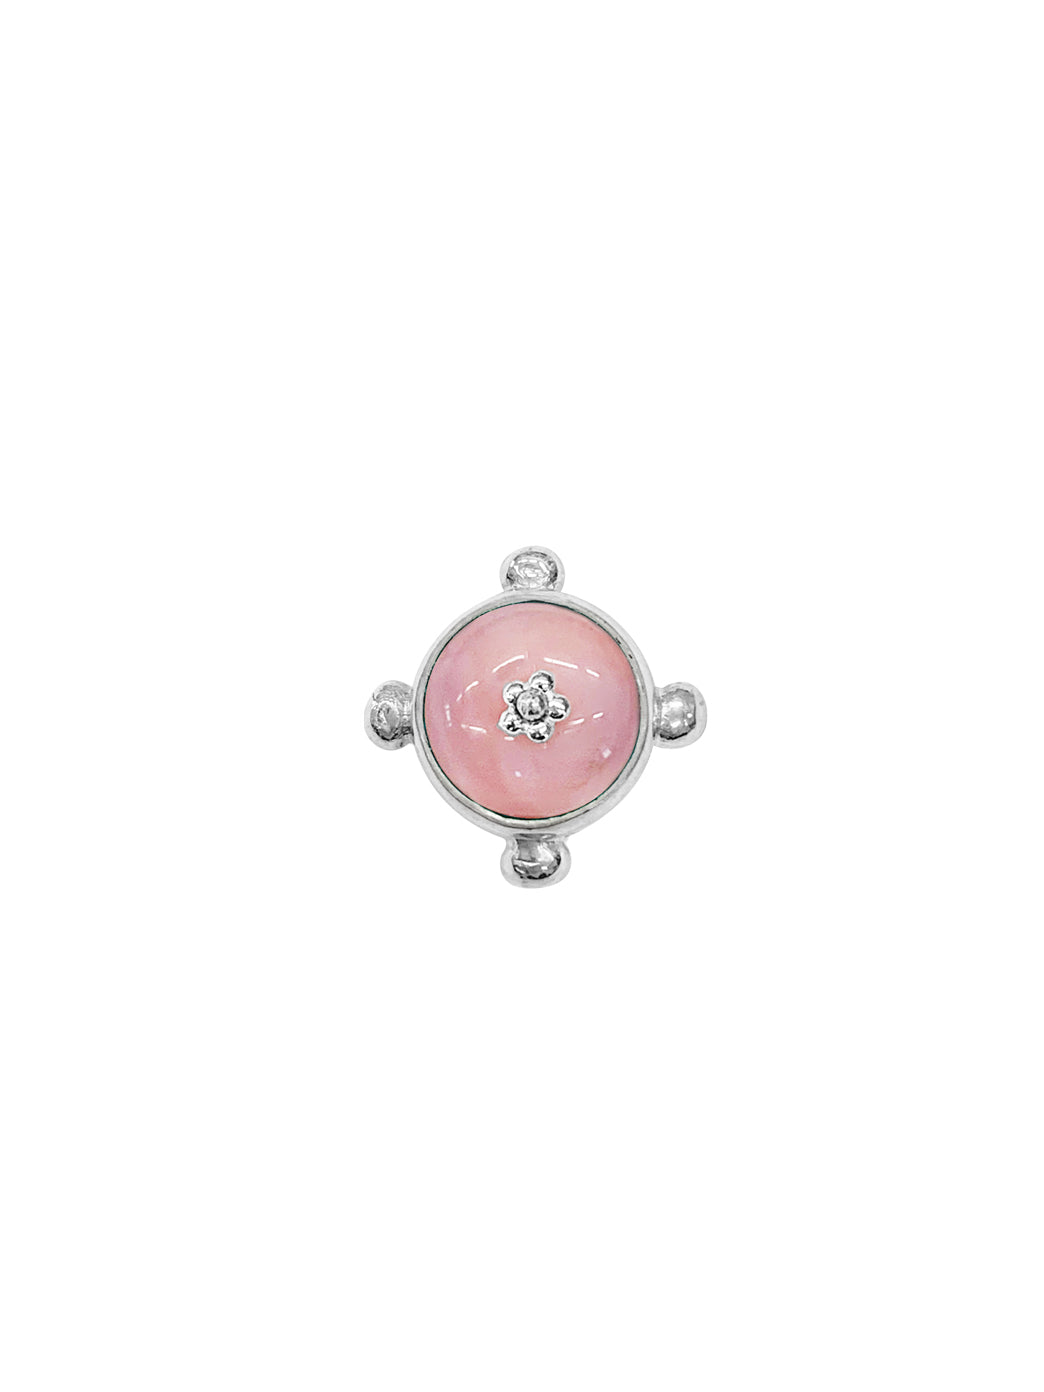 Fiorina Jewellery Athena Pinkie Ring Pink Opal